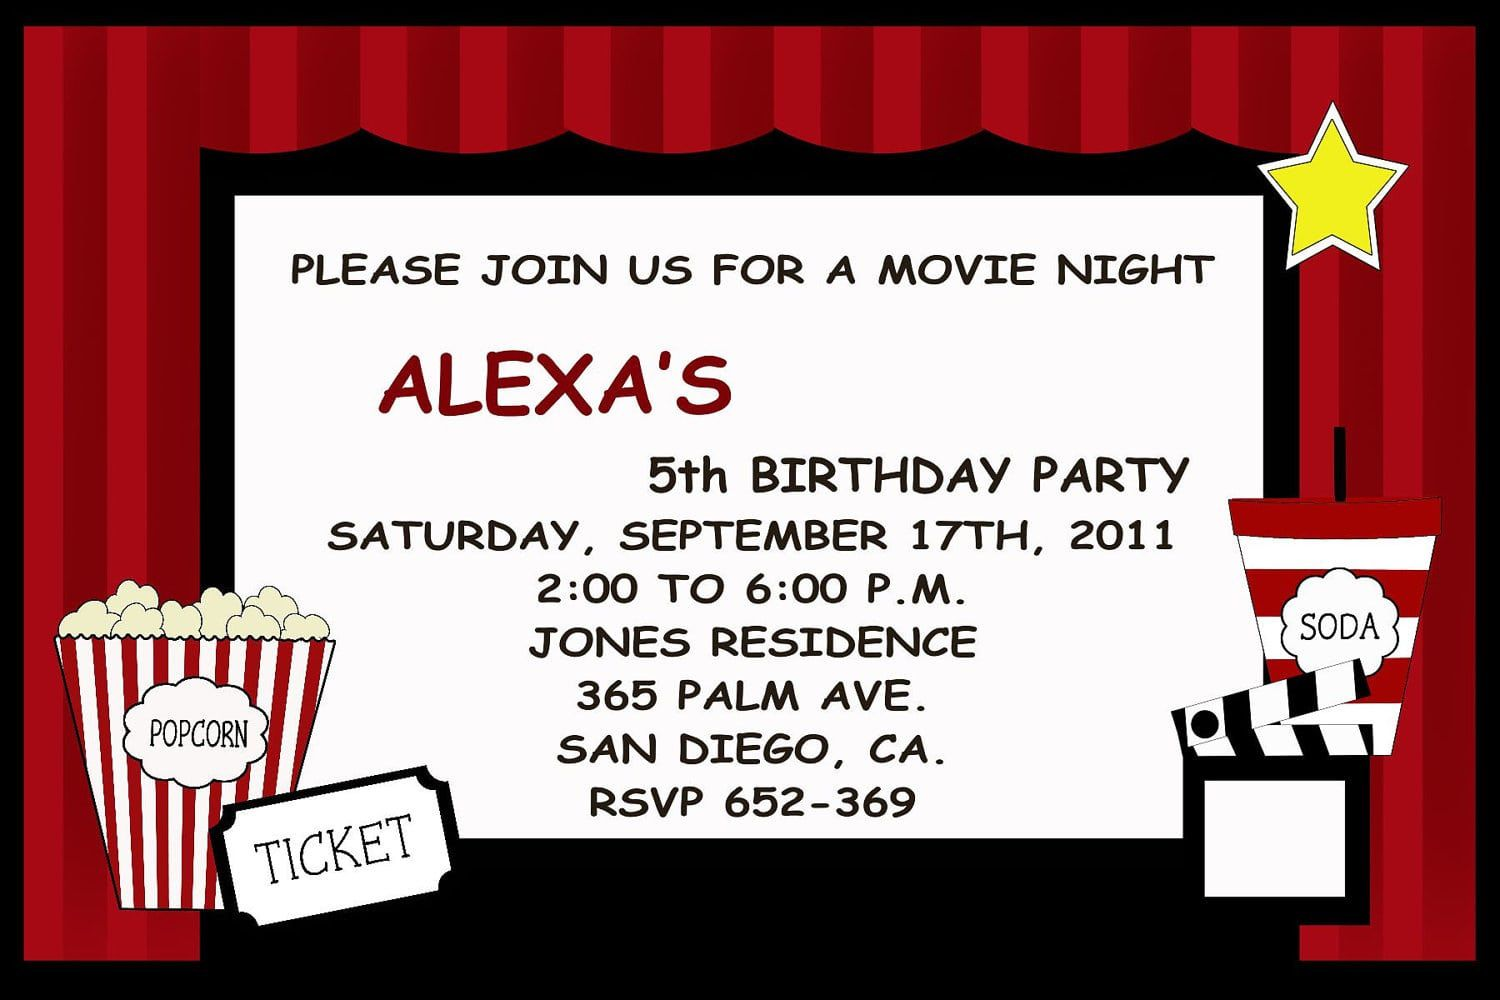 008 Magnificent Movie Ticket Invitation Template Highest Quality  Blank Free Download Editable PrintableFull